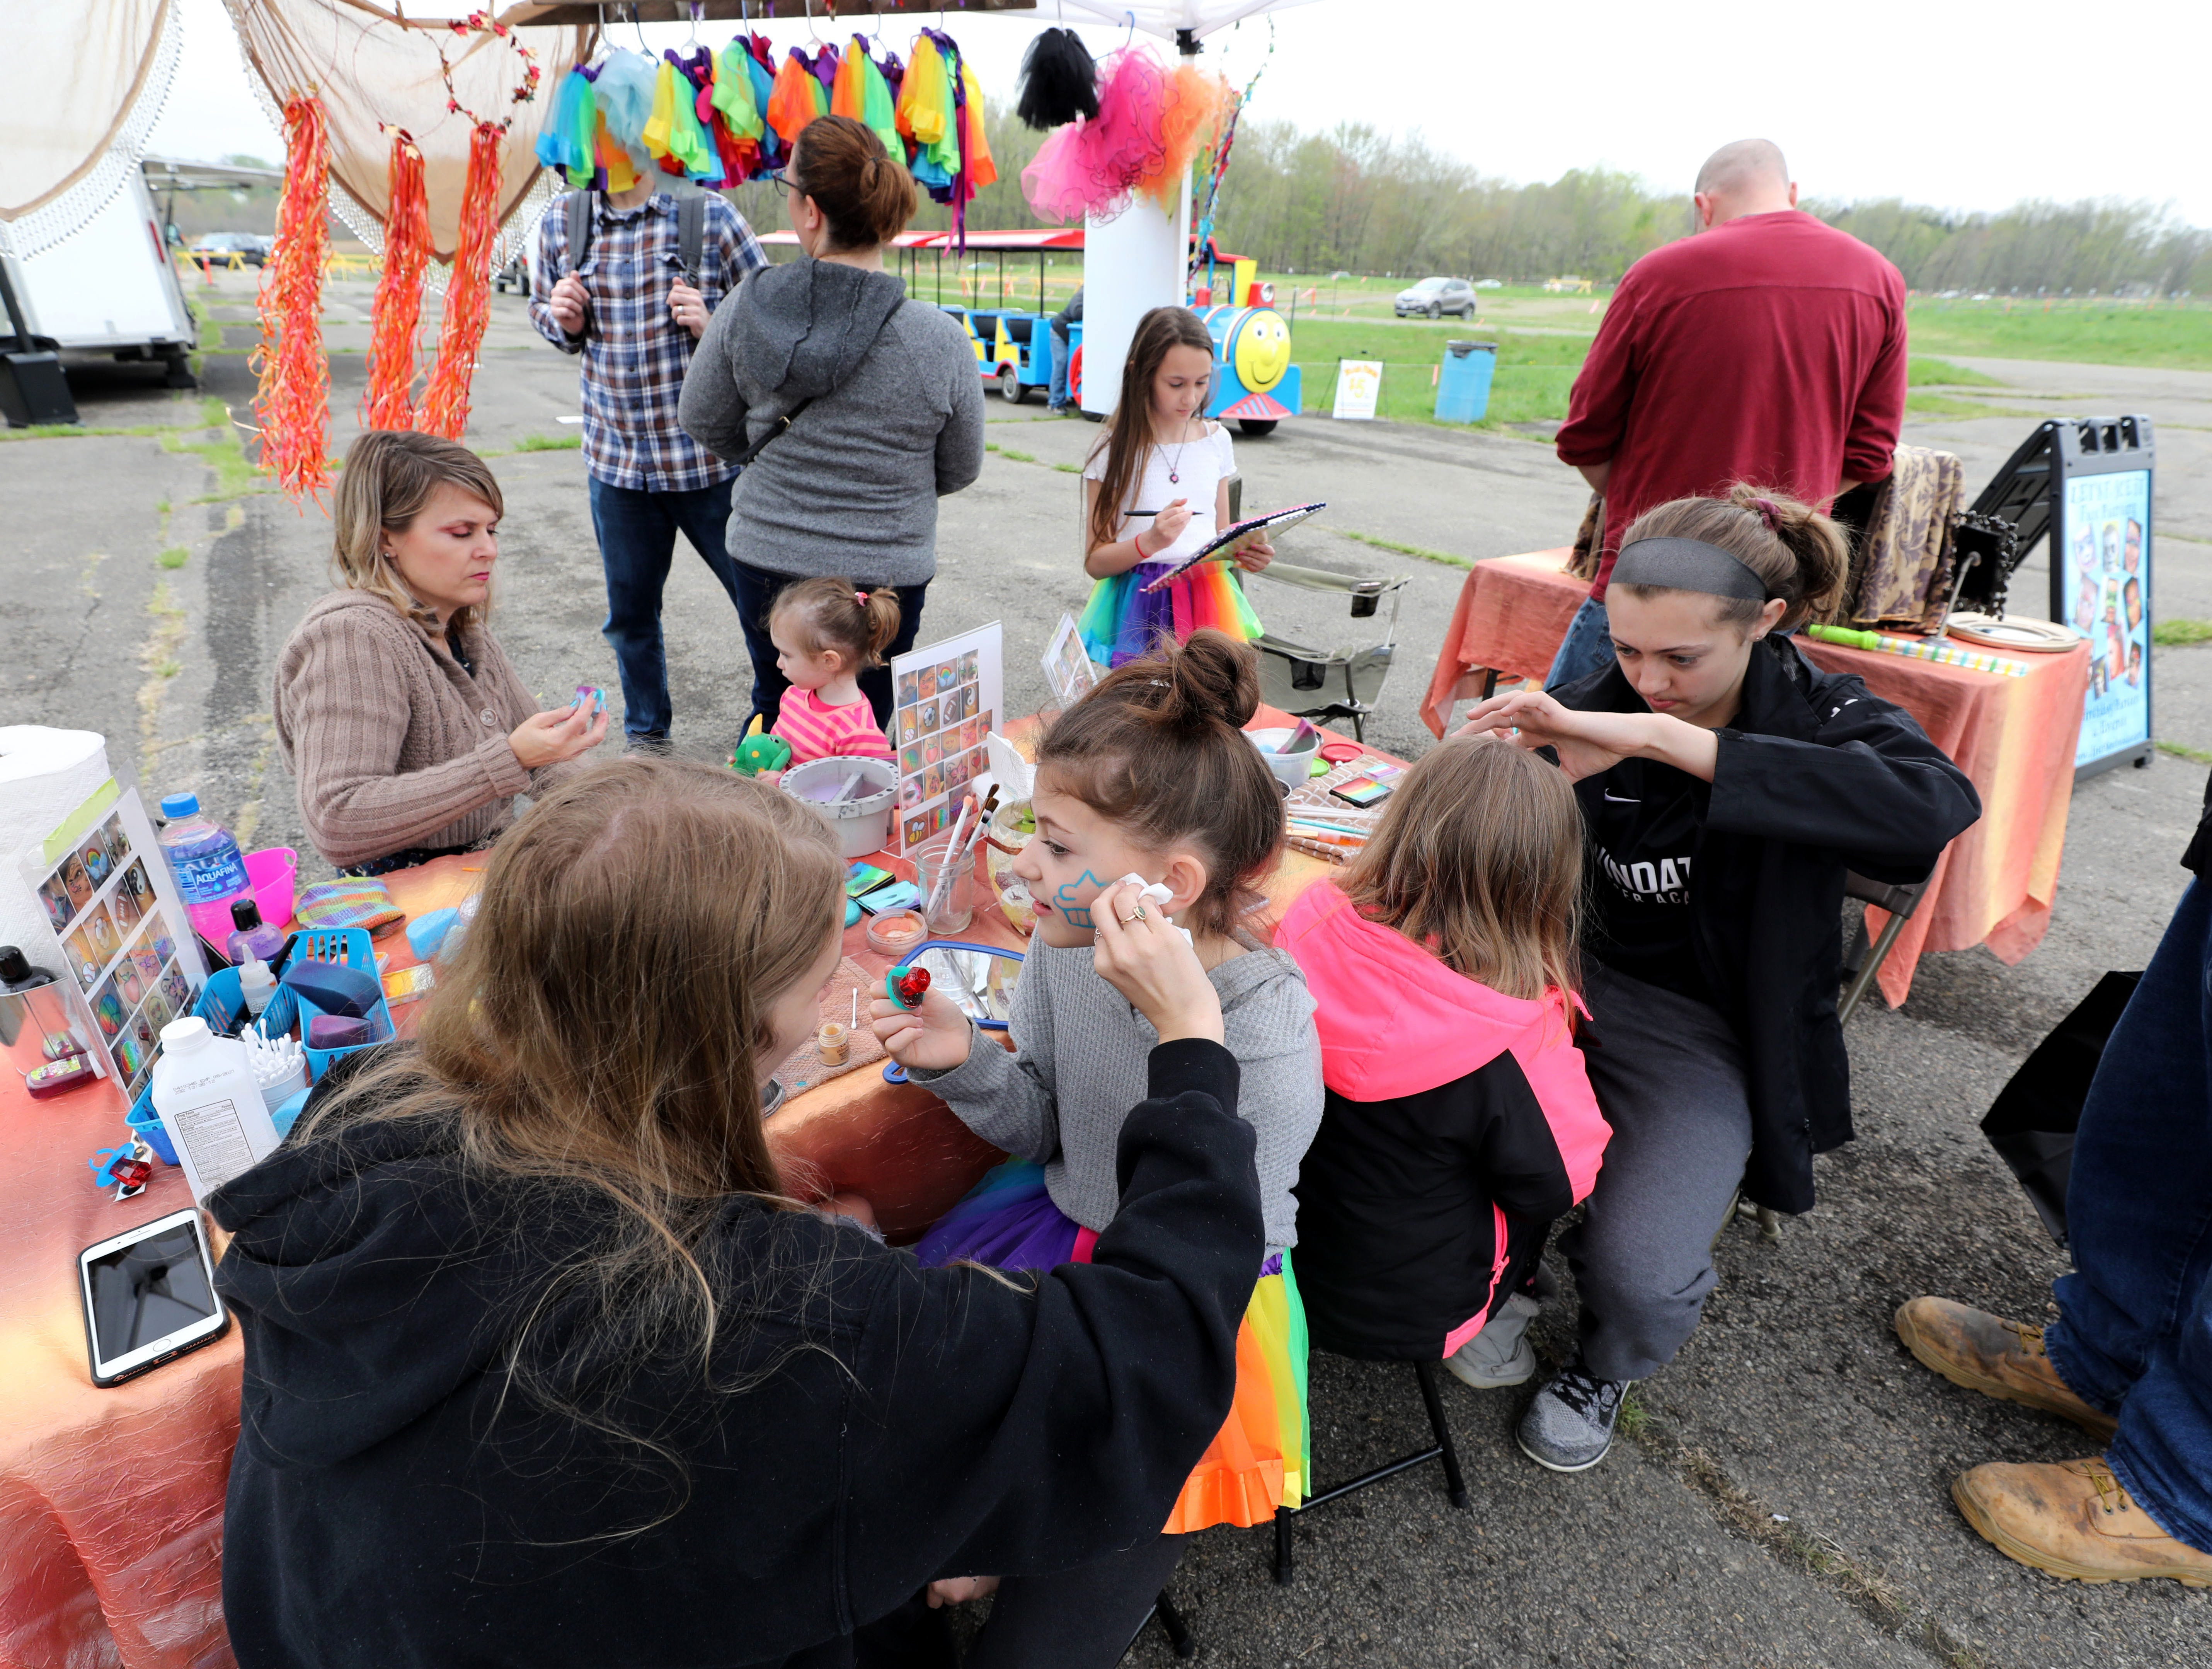 The face painting booth at the K104.7 Cupcake Festival at the Stormville Airport, May 4, 2019.